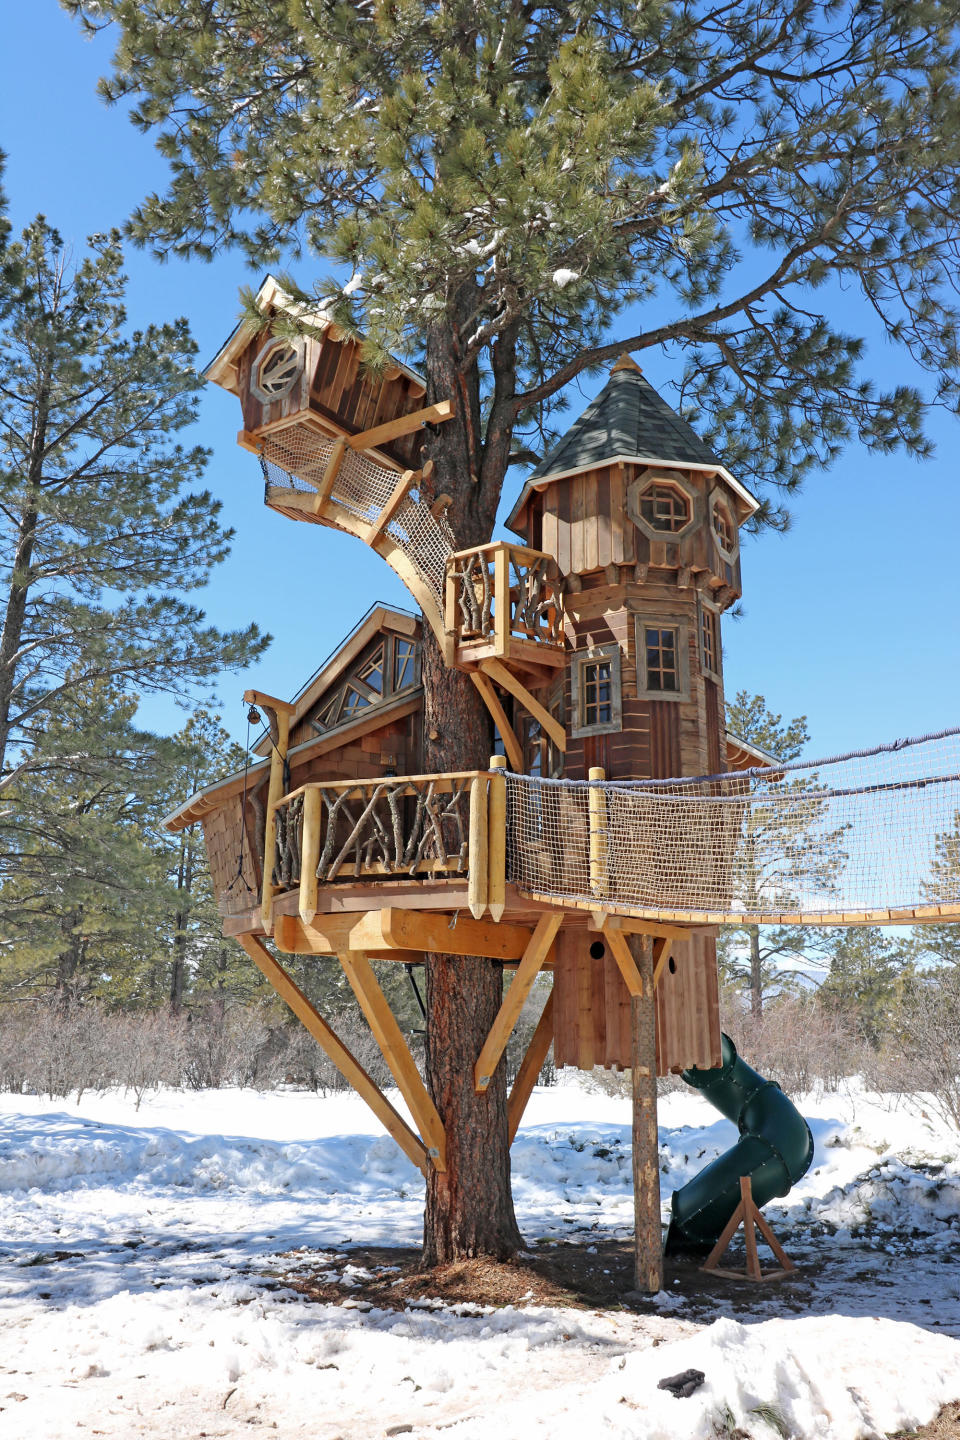 This undated photo provided by Aaron Smith, who owns Treecraft Design-Built in Fort Collins, Colorado, shows a Pagosa Springs treehouse Smith and his firm built. Smith said interest in treehouses has increased in the last few years. (Aaron Smith via AP)